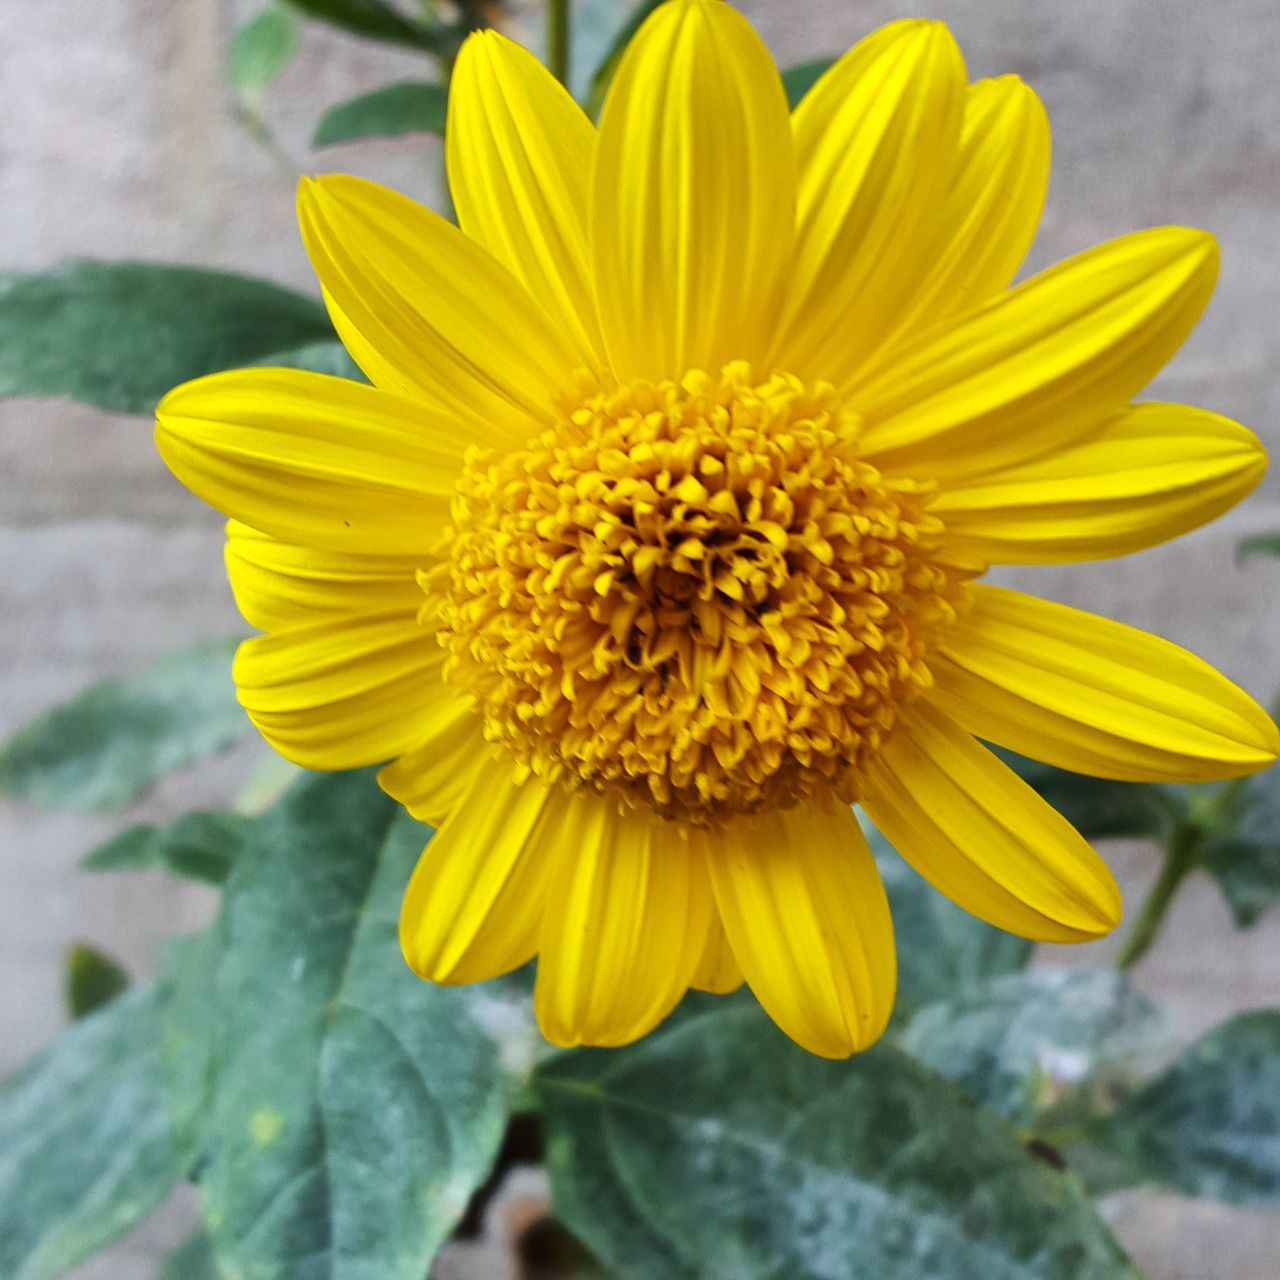 flower, yellow, petal, fragility, flower head, freshness, beauty in nature, nature, day, plant, outdoors, close-up, growth, no people, blooming, focus on foreground, pollen, gazania, sunflower, springtime